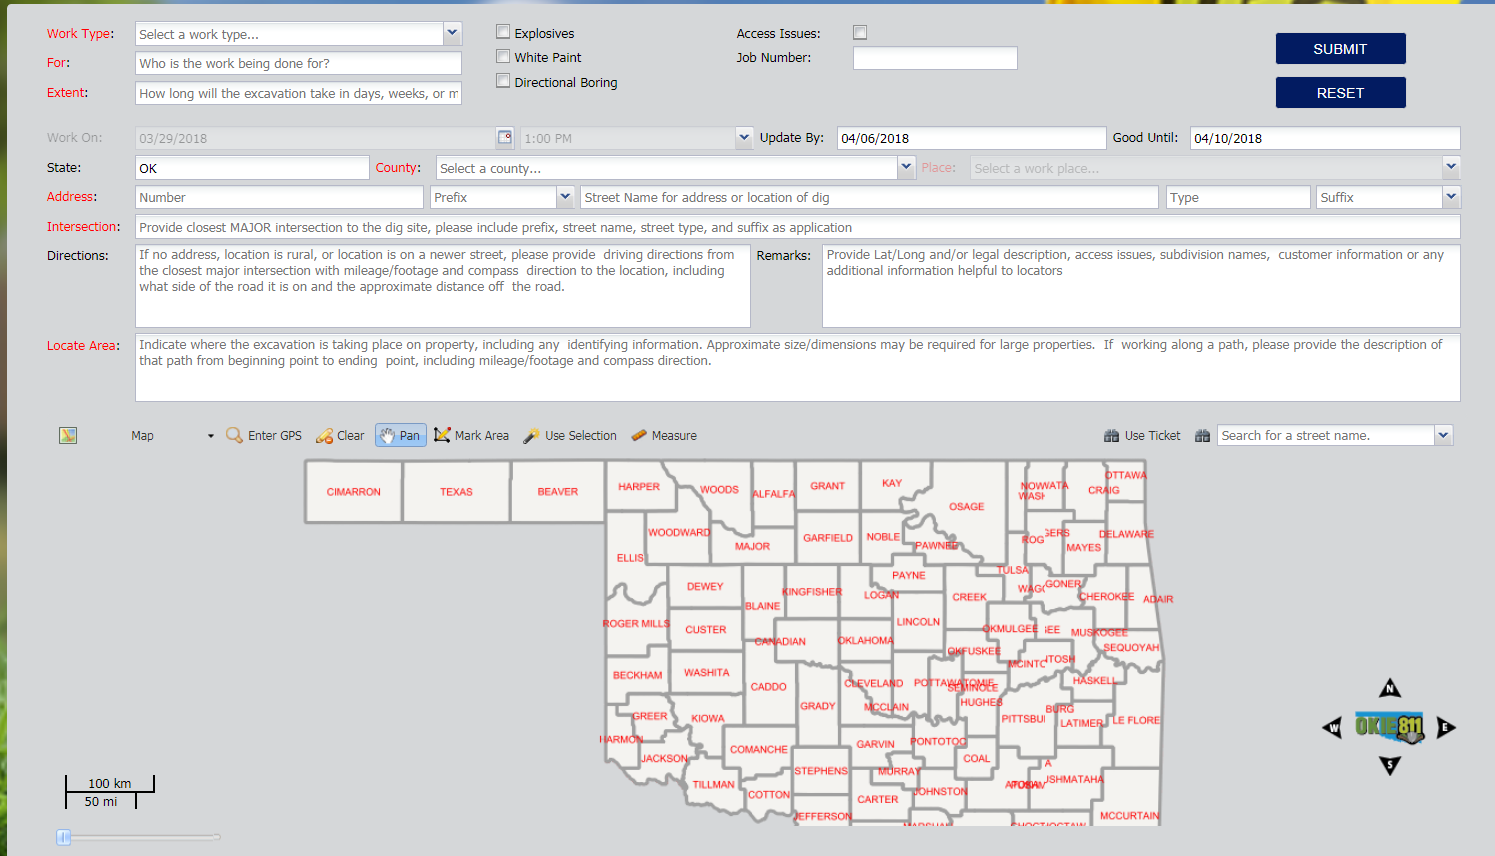 When submitting a locate request ticket via the OKIE811 Web Portal, the excavator has the option to map the dig site